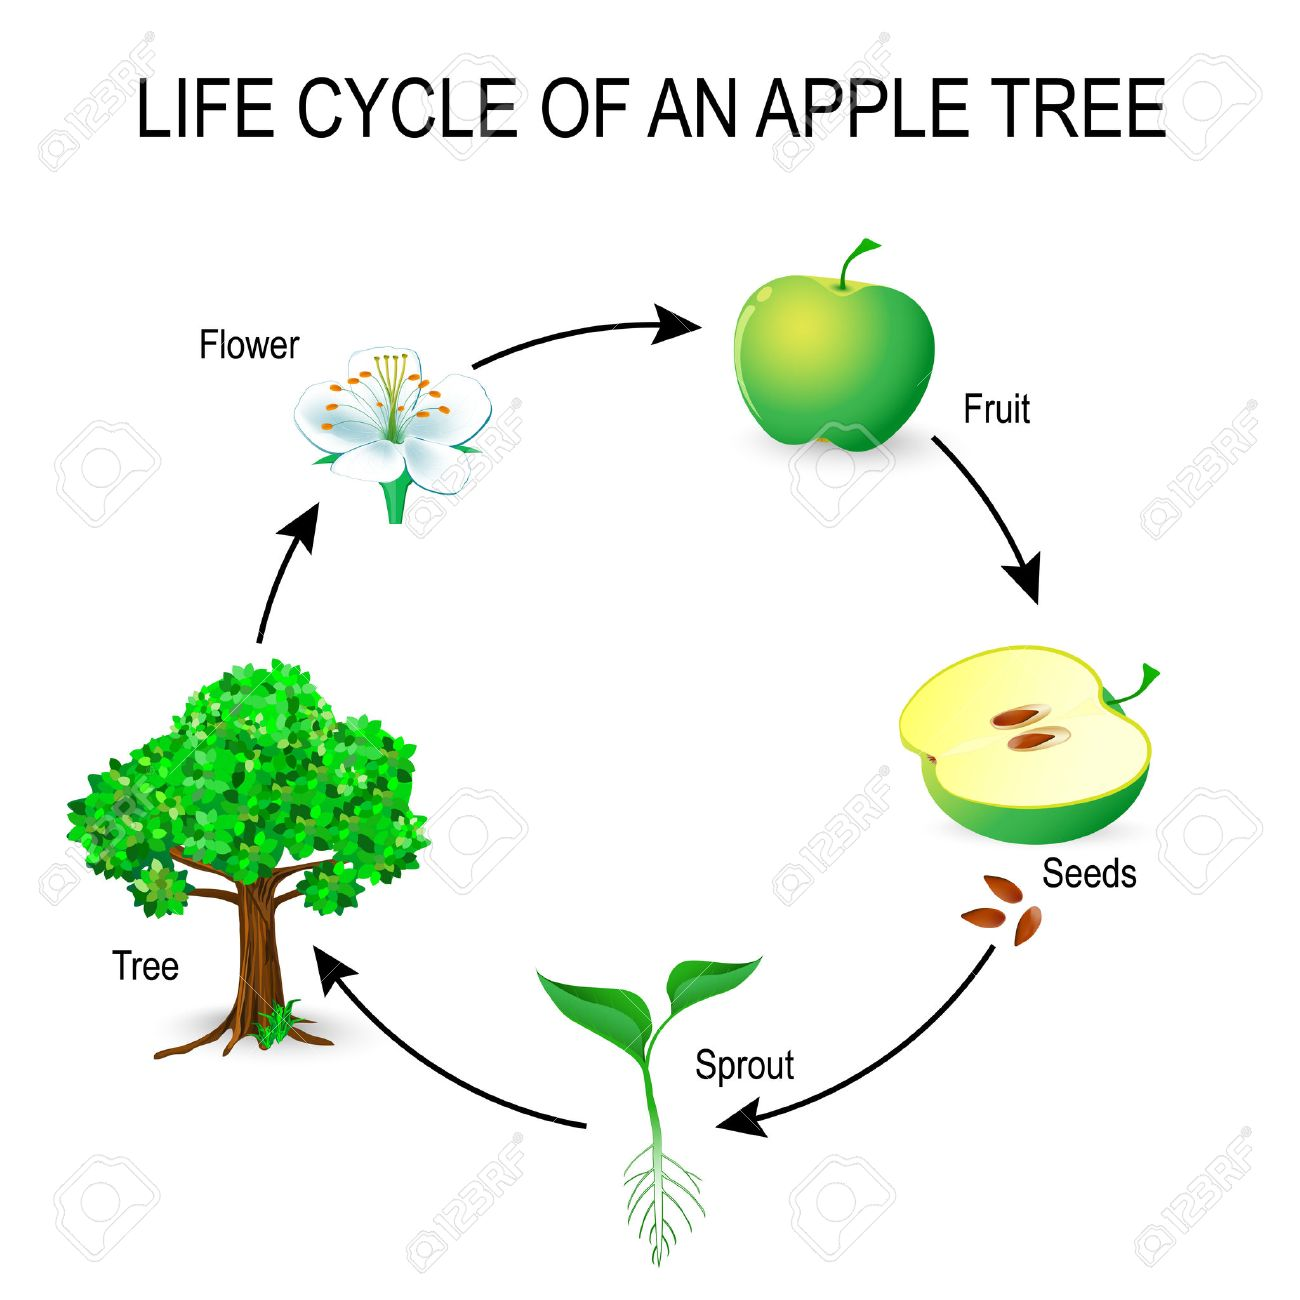 Life Cycle Of An Apple Tree Flower Seeds Fruit Sprout Seed Royalty Free Cliparts Vectors And Stock Illustration Image 75006885